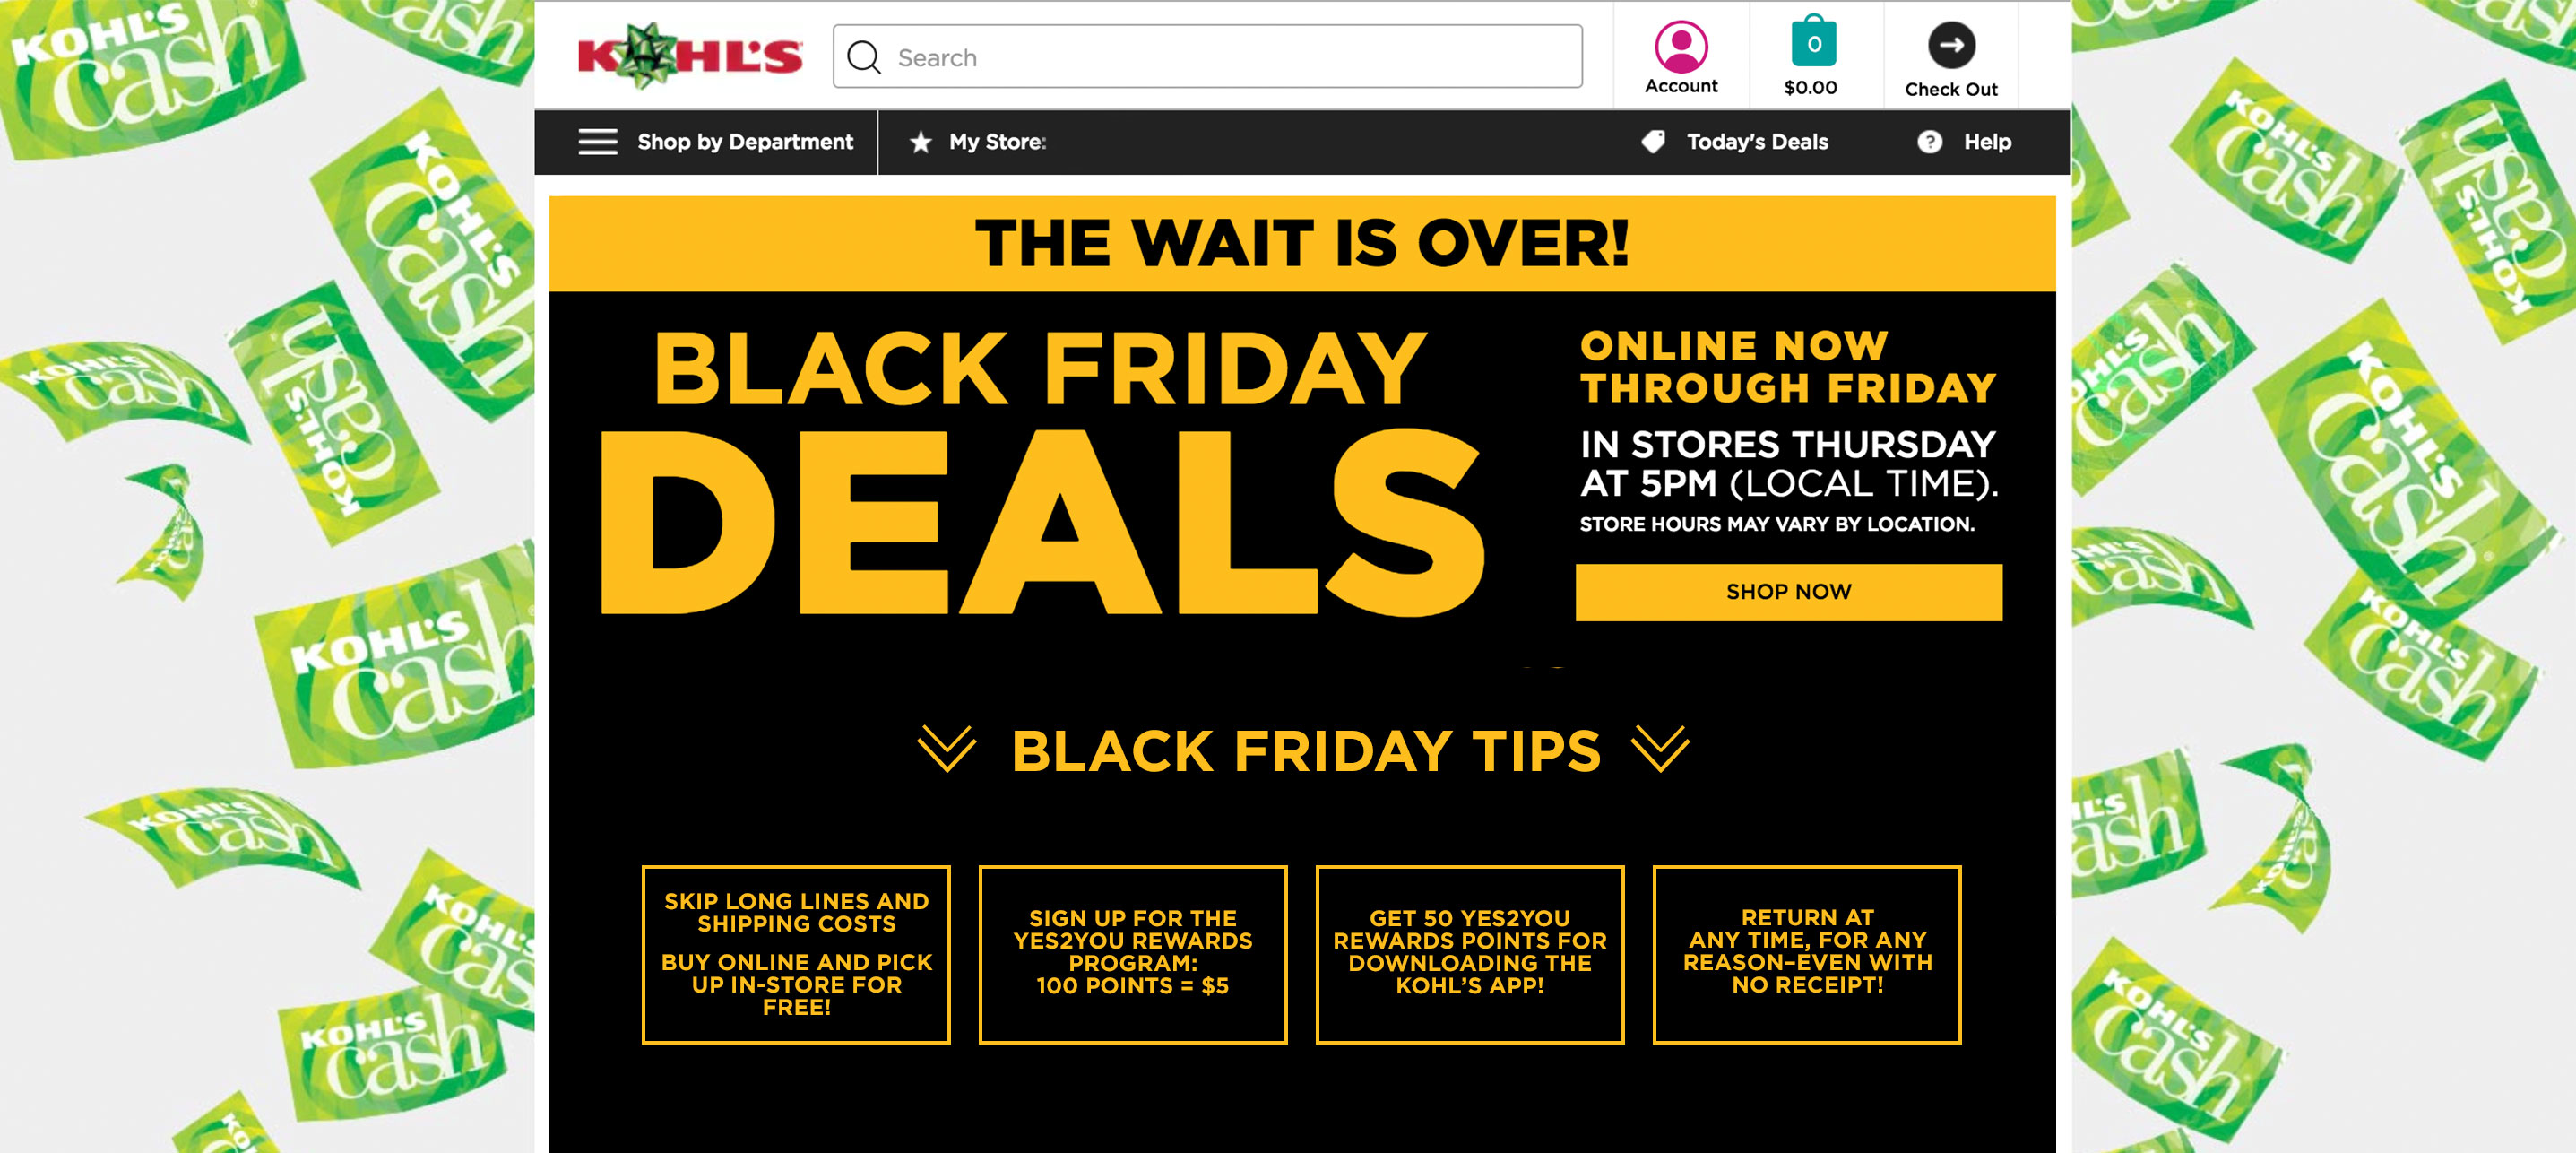 Get $15 extra Kohl's Cash every $50 you spend Nov. 20th-25th Kohl's stores open at 5pm (local time) on November 24th for Black Friday deals Skip long lines and shipping costs Buy online and pick up in-store for free! Sign up for the Yes2You Rewards Program: 100 points = $5 Download the Kohl's App for easy shopping & order tracking Get 50 Yes2You rewards points just for downloading! Return at anytime, for any reason--even with no receipt! | blog.phmc.com